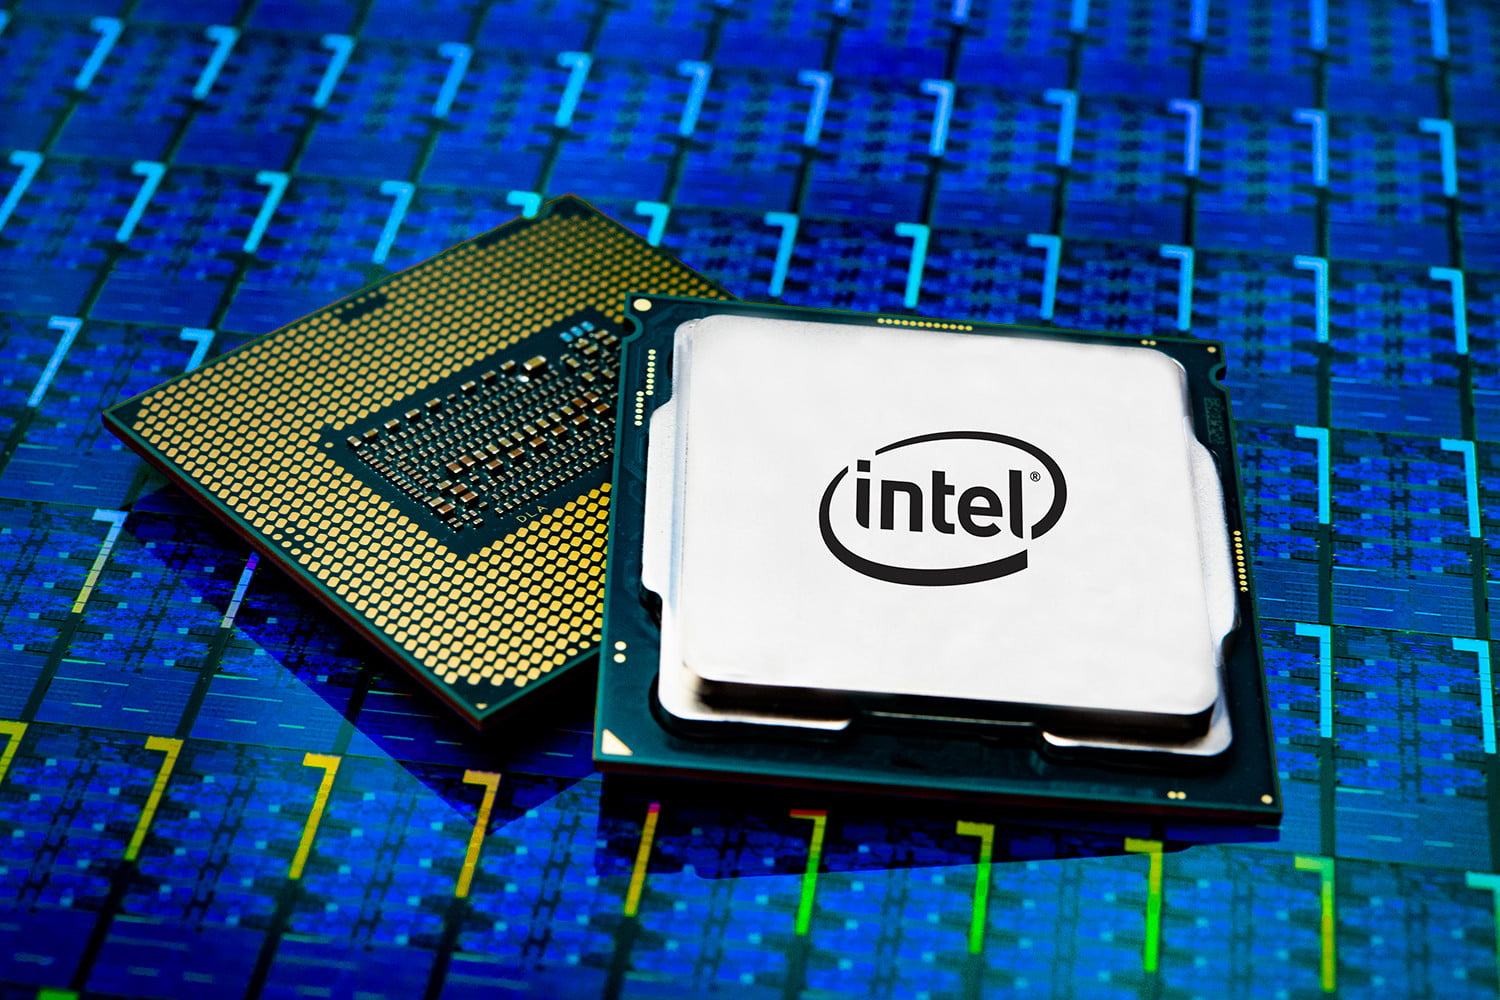 Chip off the auction block – Intel's i9-9990XE may be sold to the highest bidder